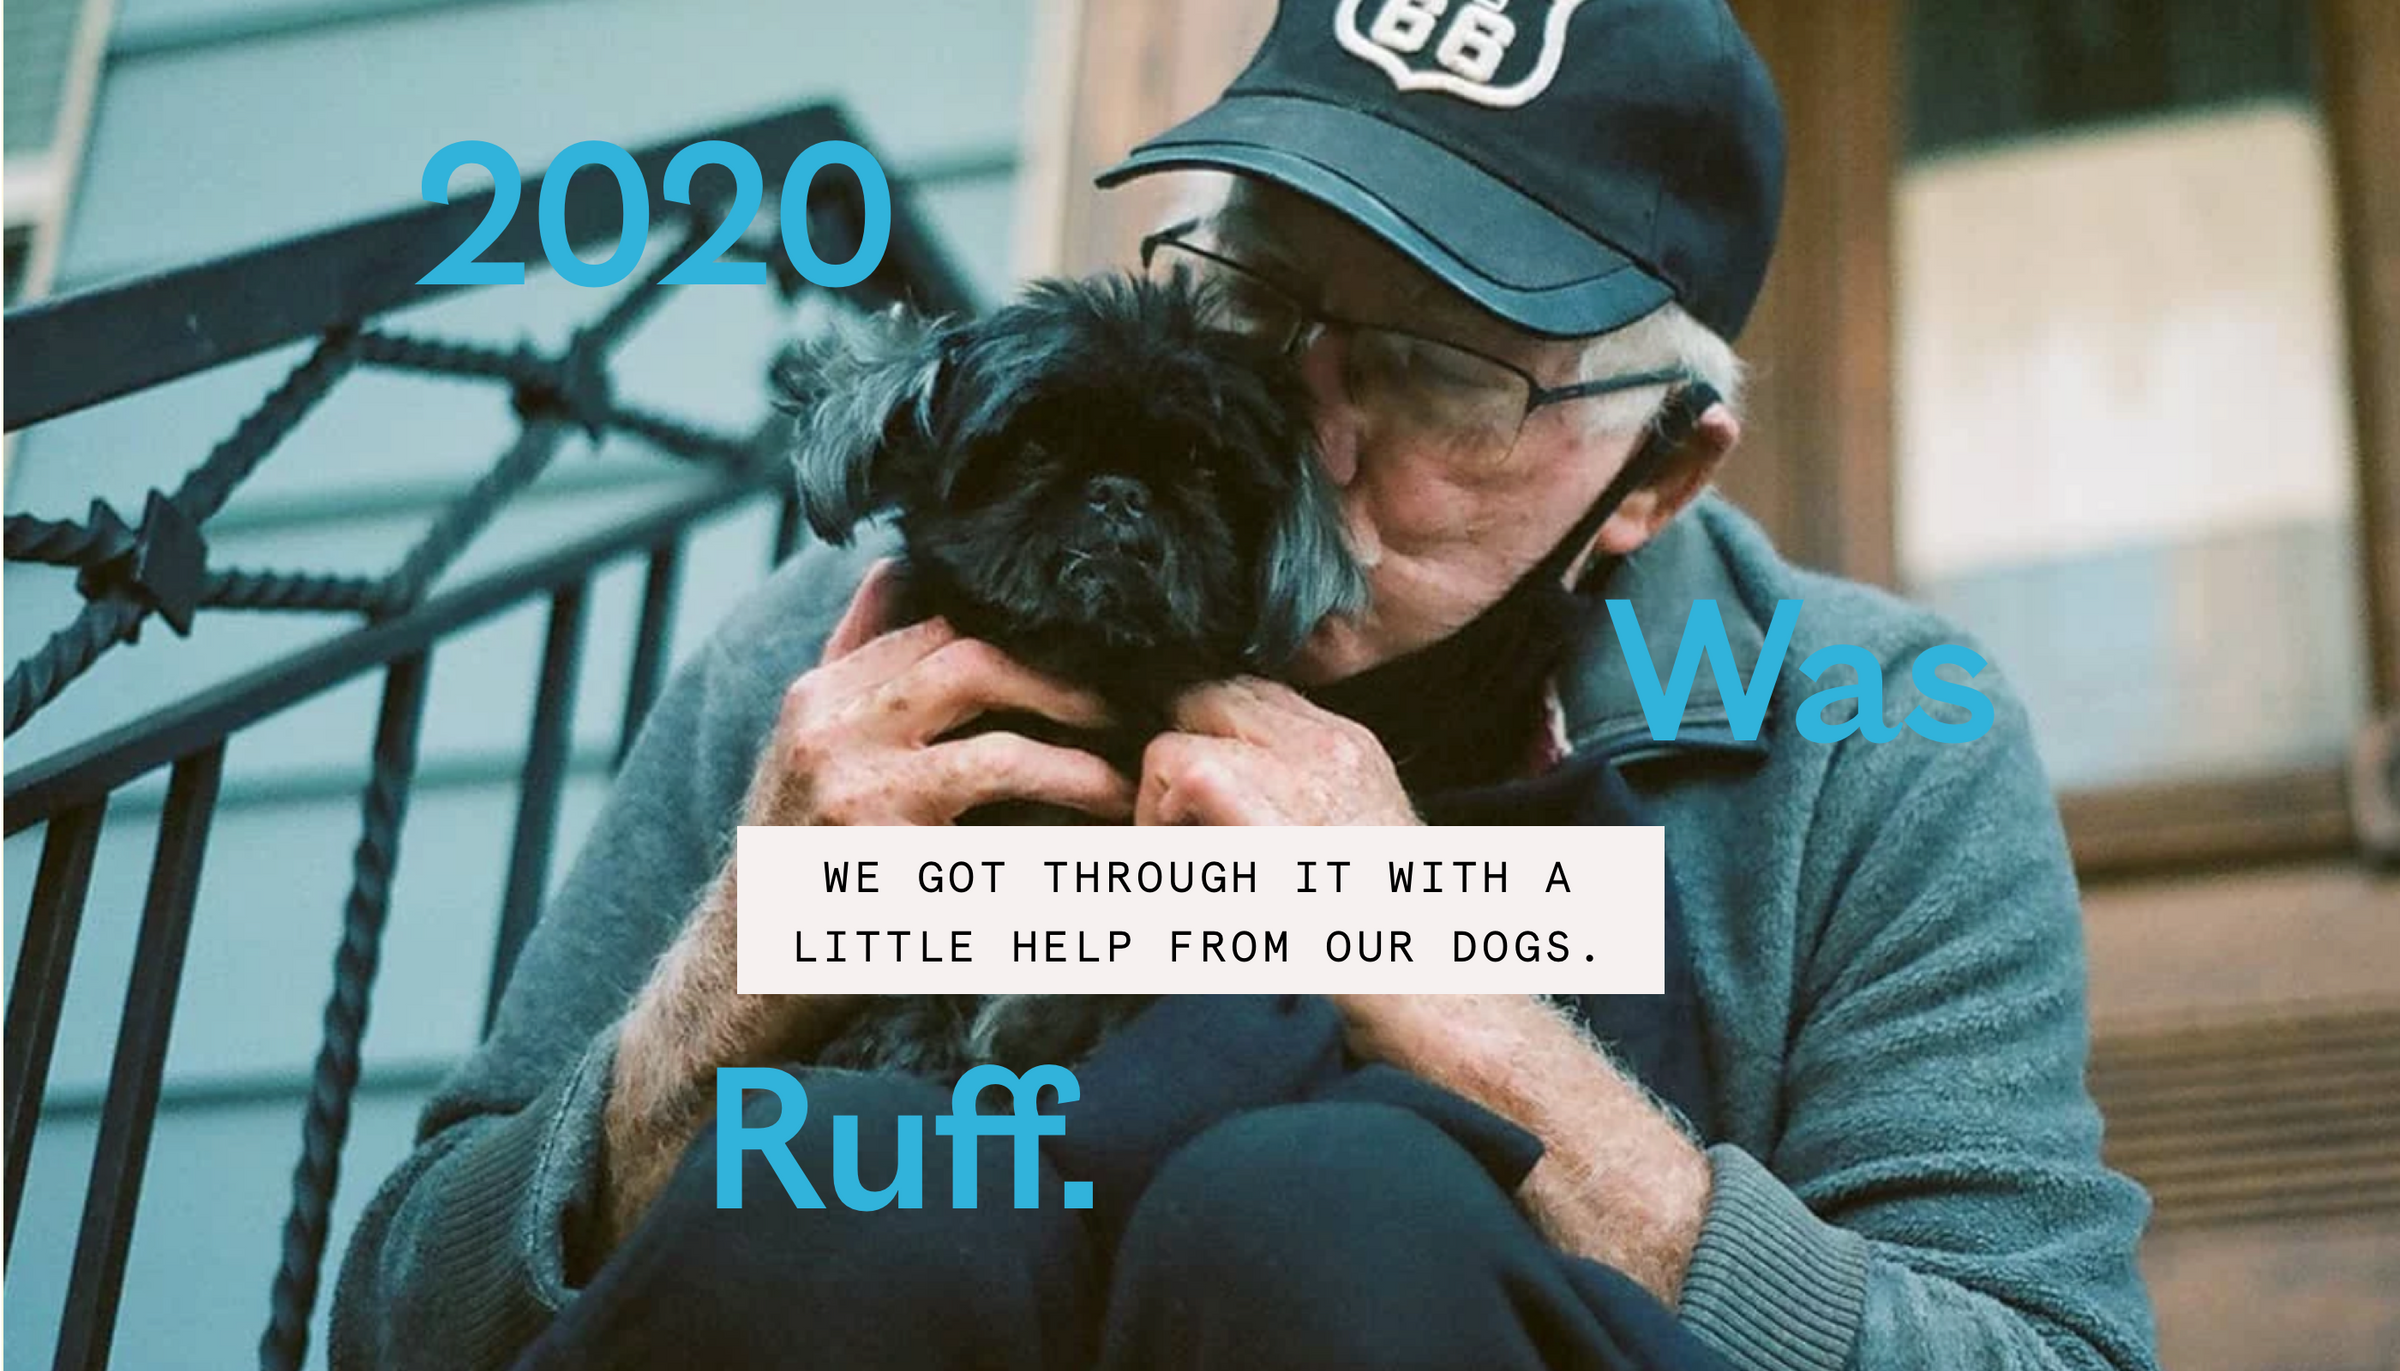 2020 was *ruff*. We got through it with the help of our dogs.